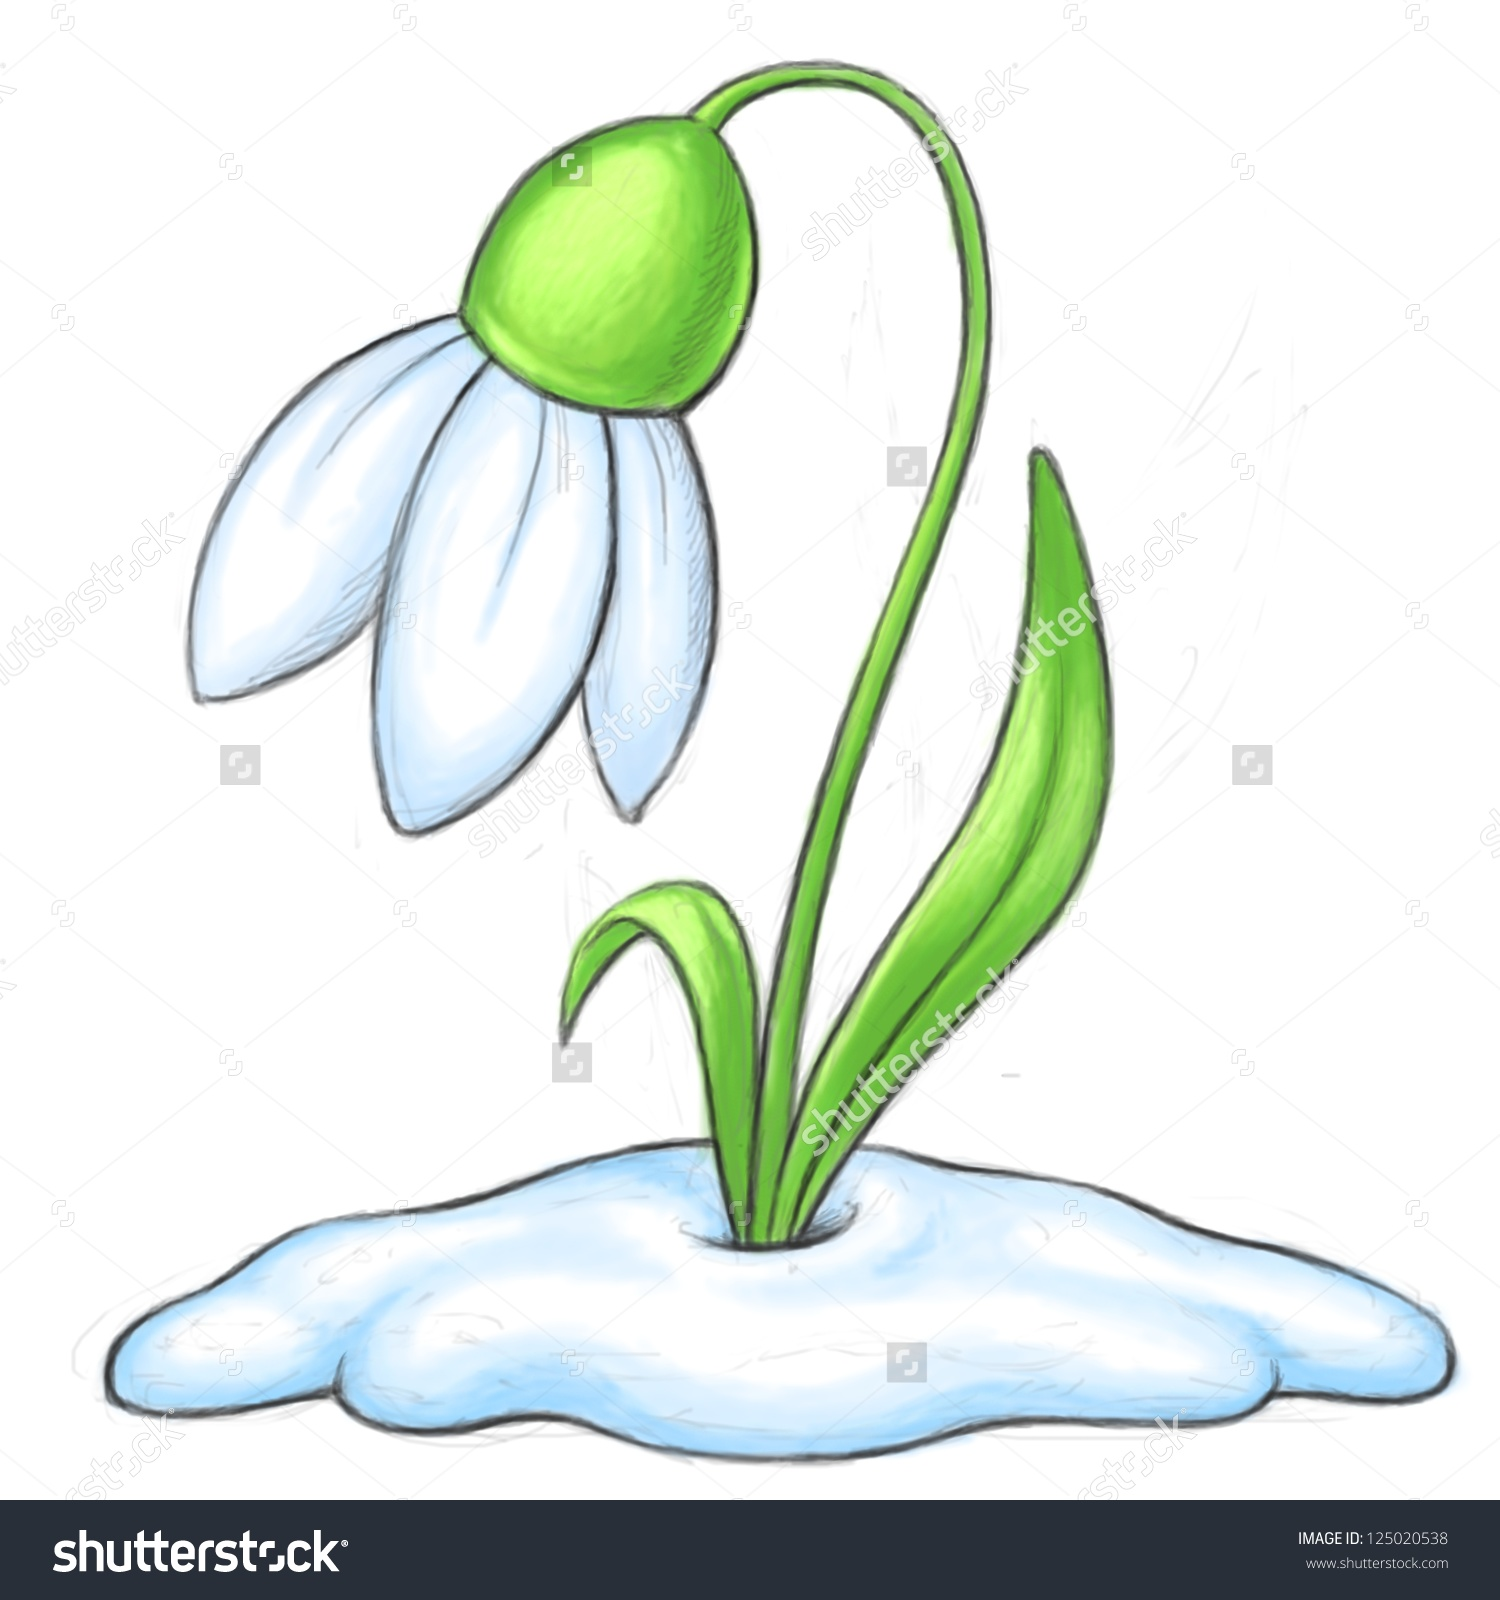 Snowdrop clipart #12, Download drawings